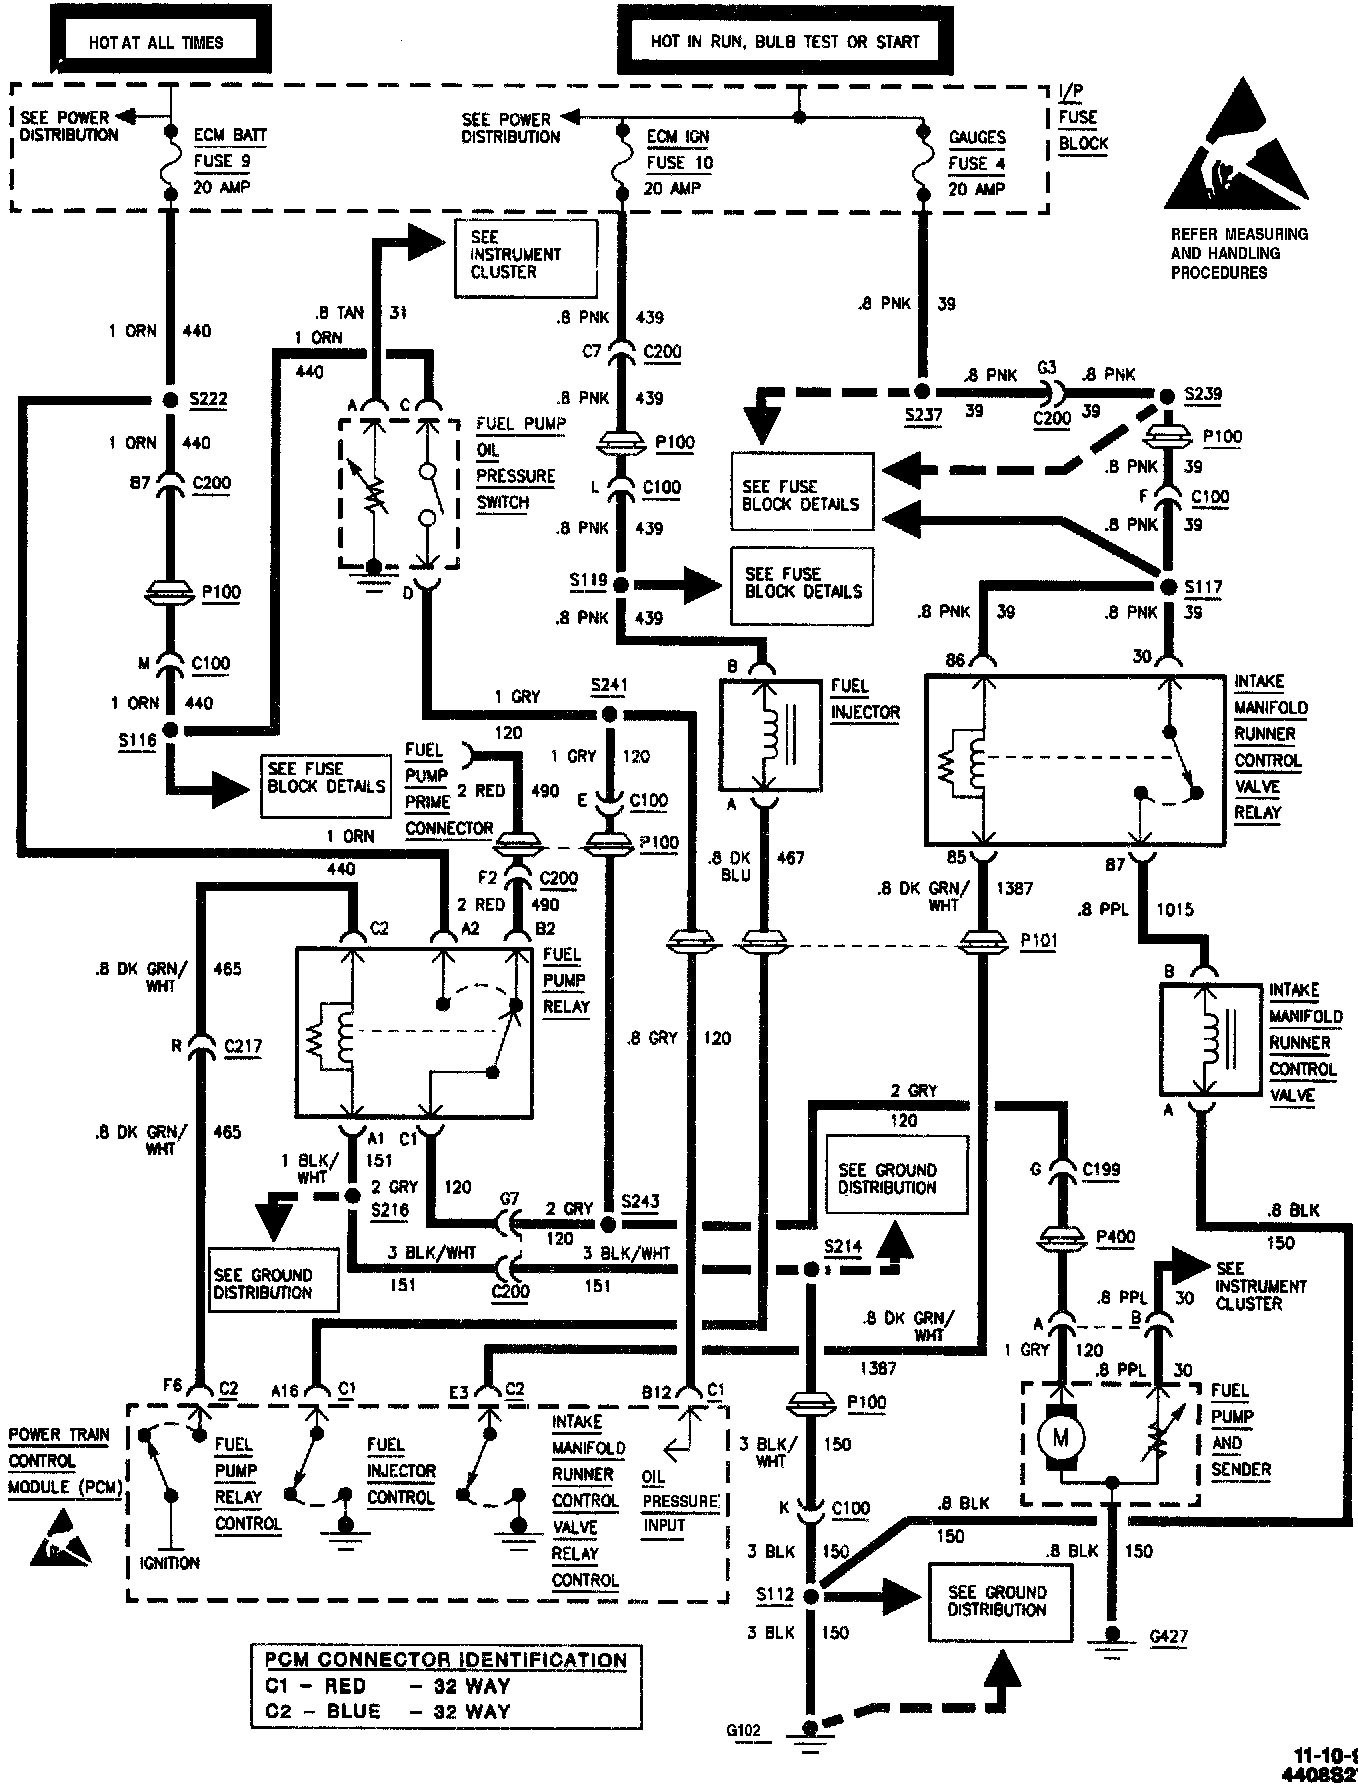 hight resolution of wiring diagram 2001 s10 zr2 wiring diagram paperwiring diagram 2001 s10 zr2 wiring diagram toolbox 01